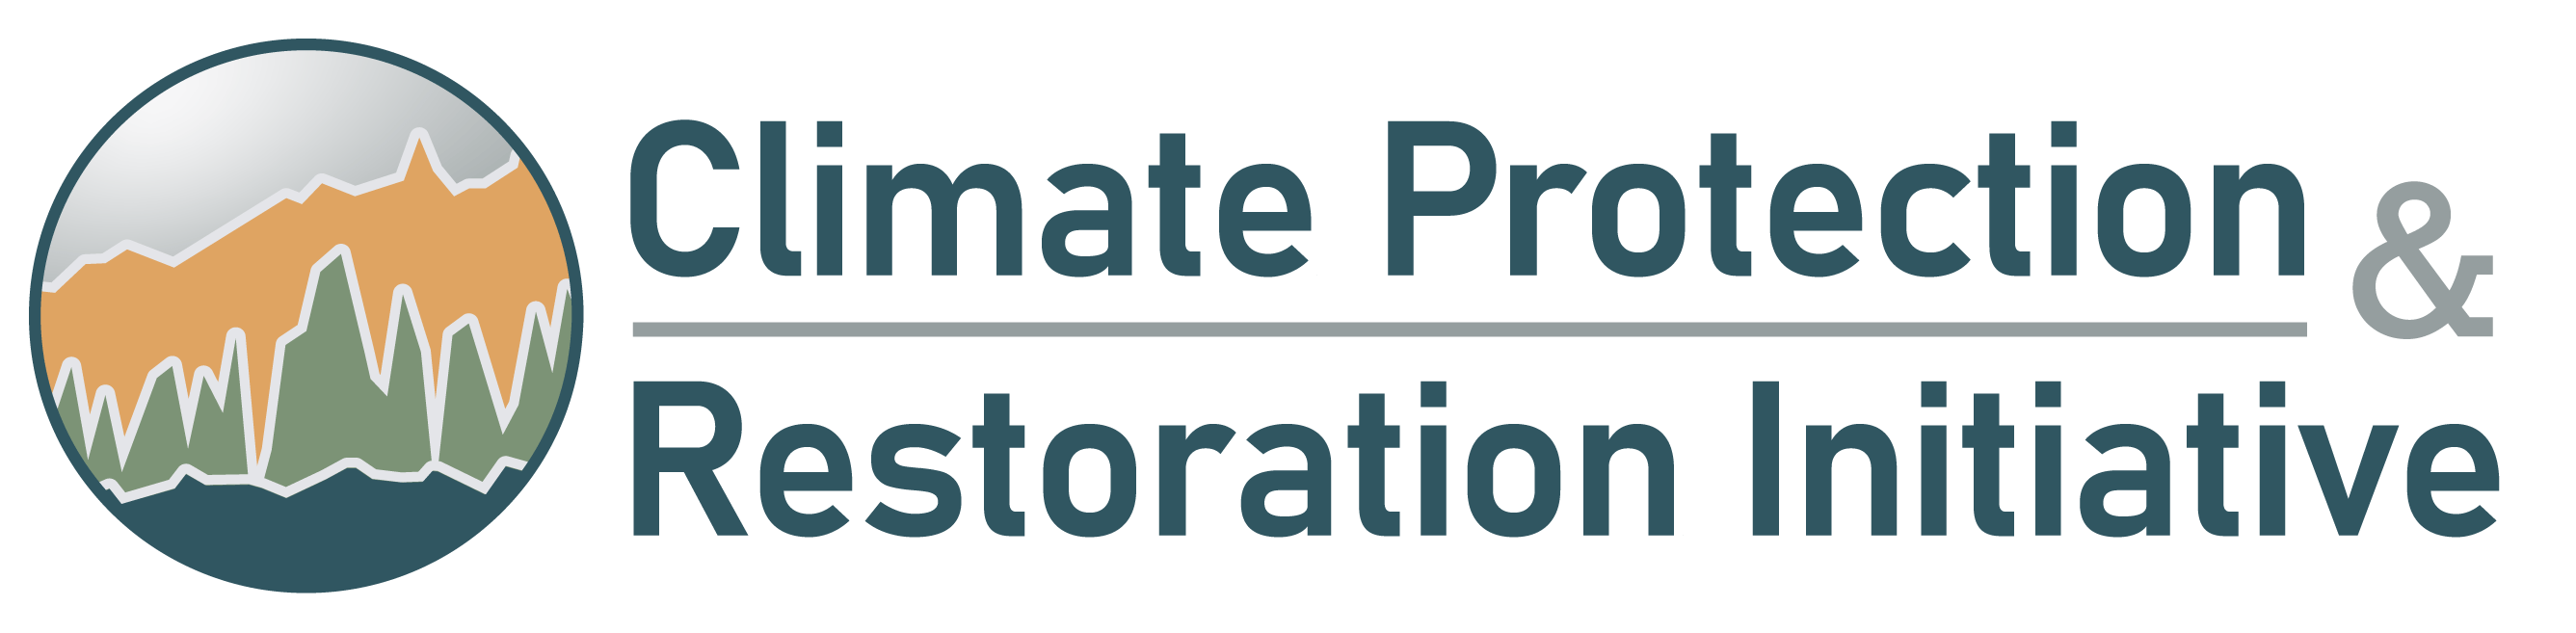 Climate Protection and Restoration Initiative